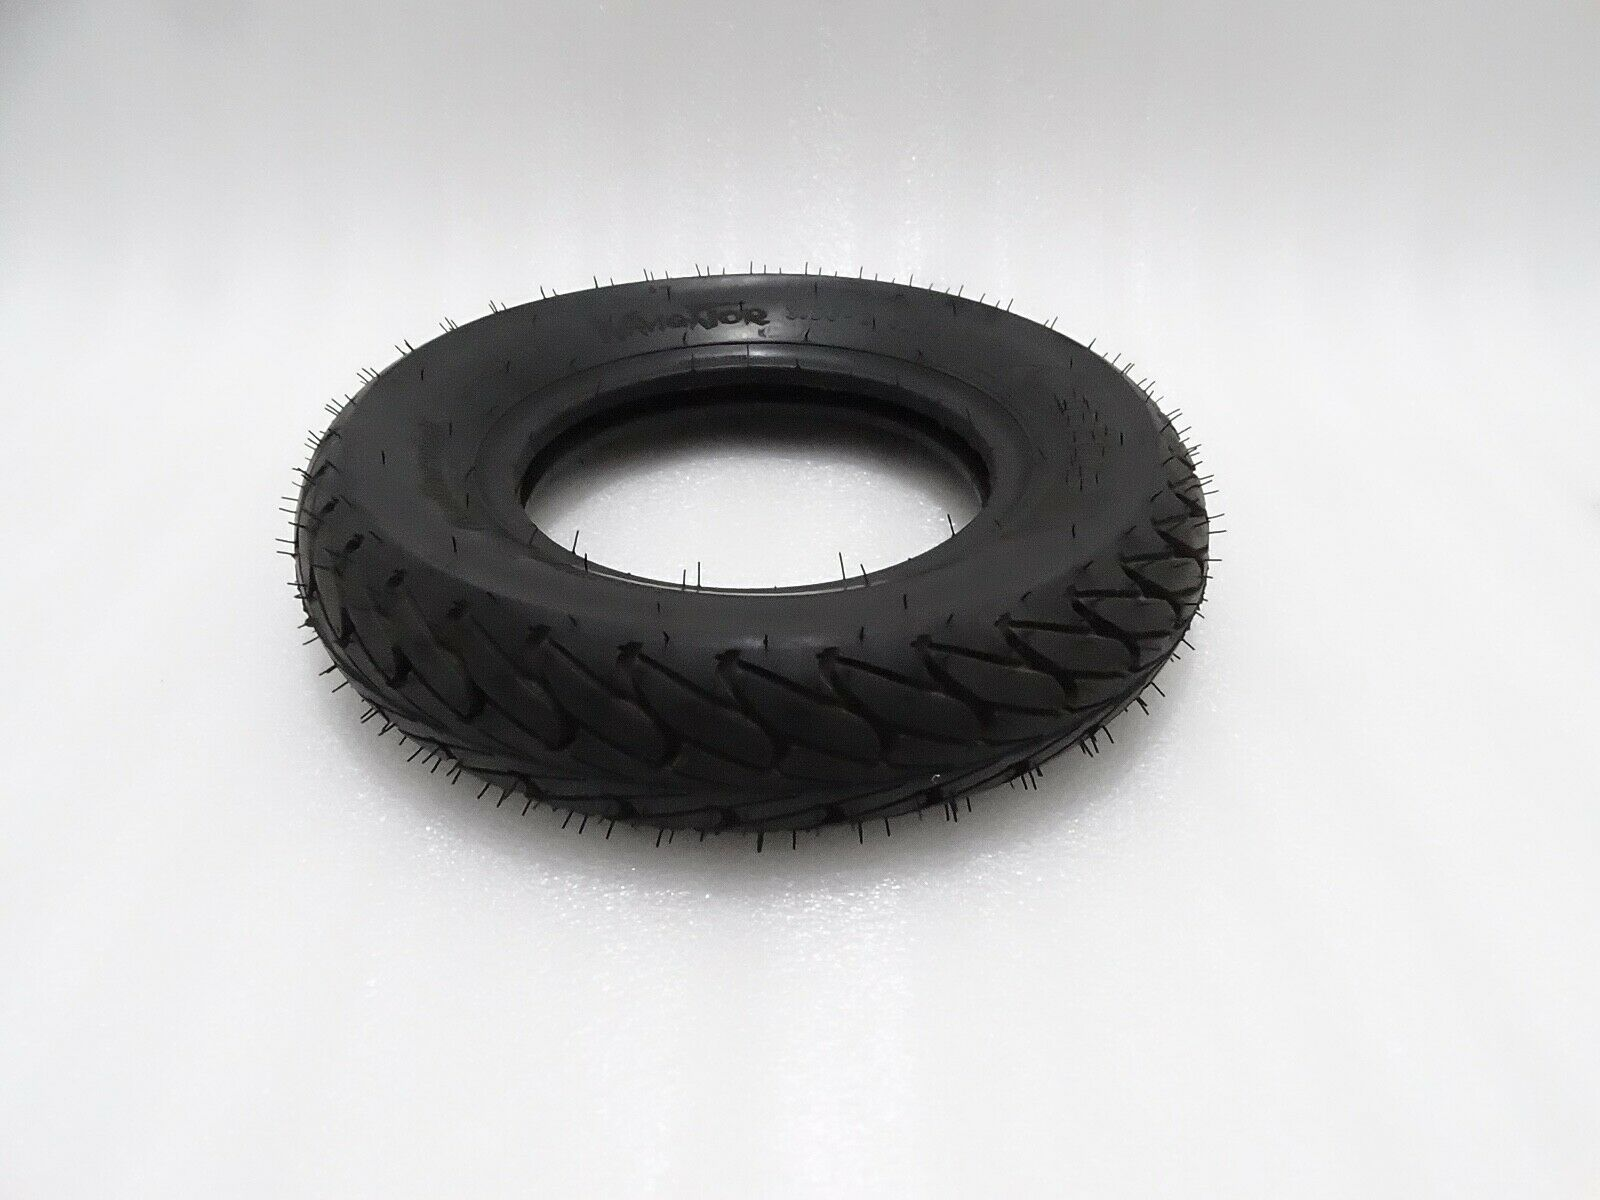 BRAND NEW VESPA SCOOTER TYRE SIZE (3 50-8)  VP761 @pummy